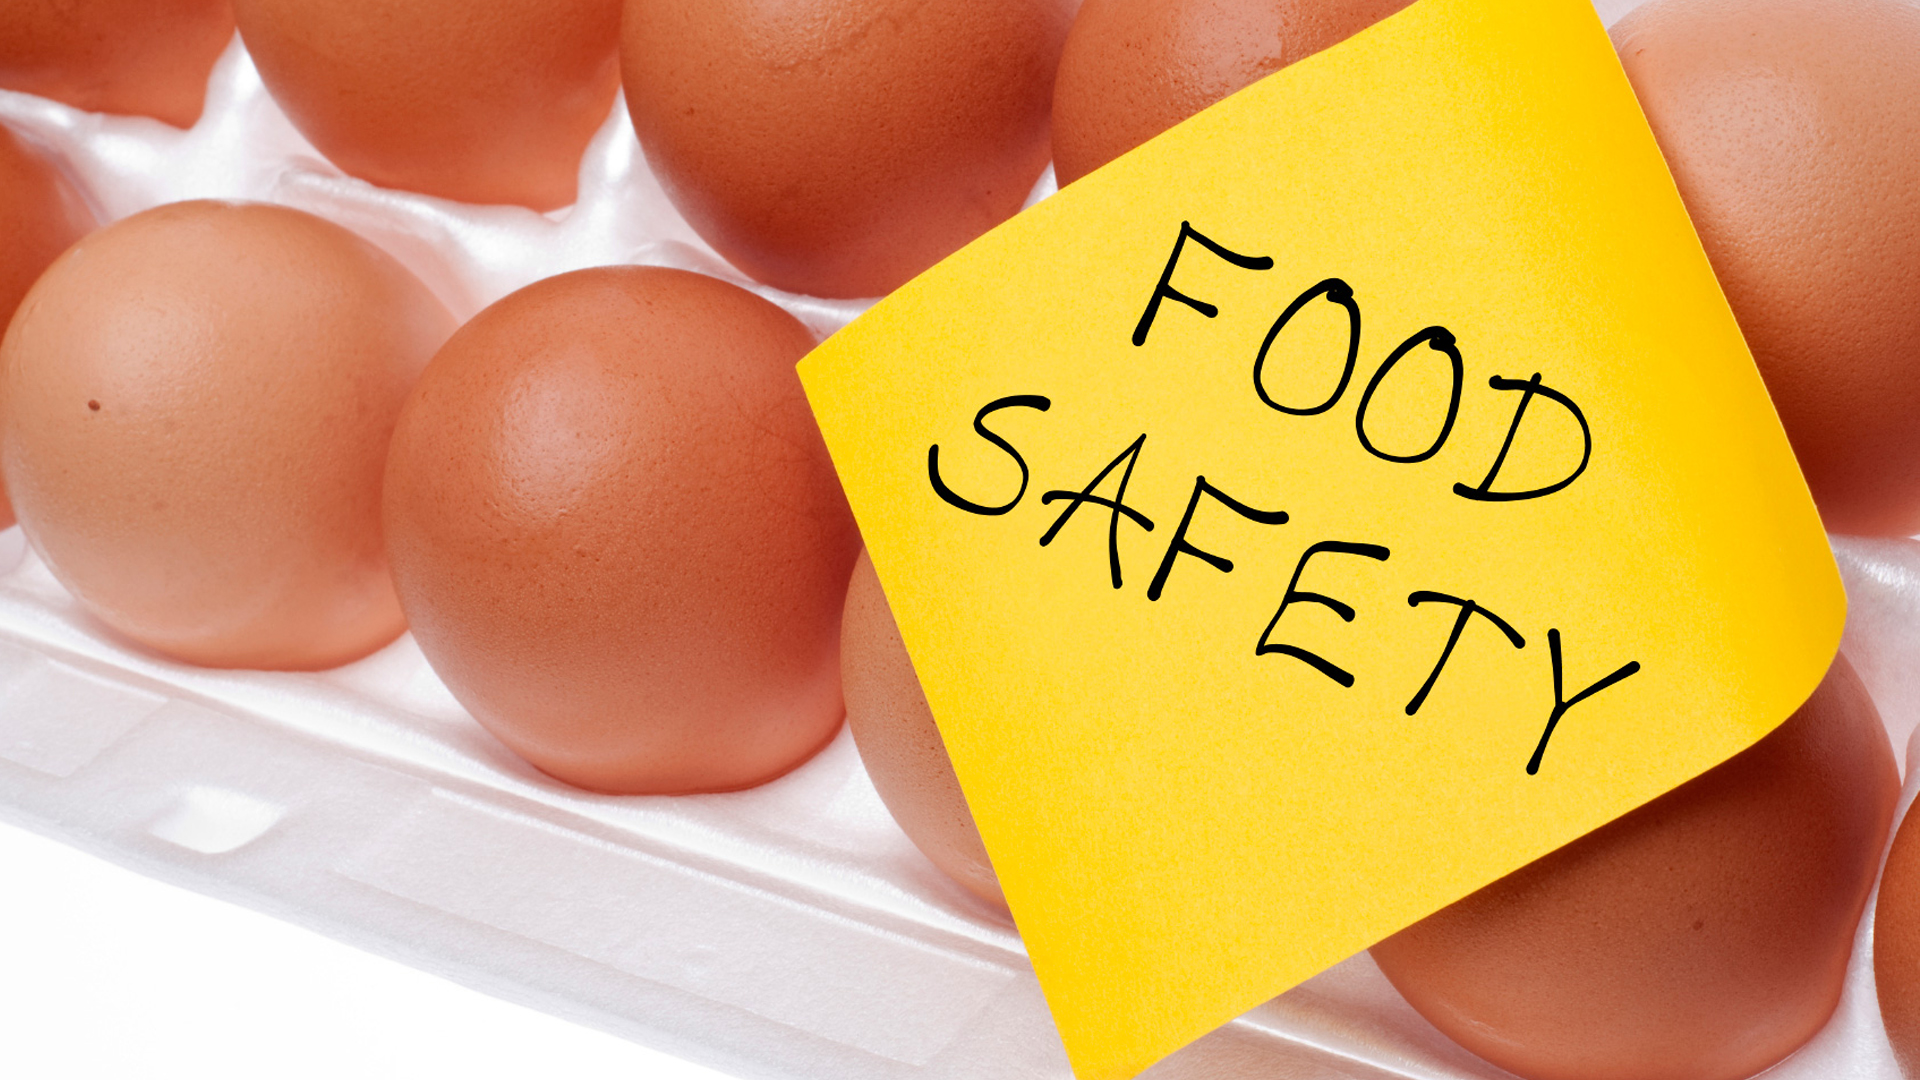 food safety modernization act in the home fleet cleanfood safety modernization act in the home